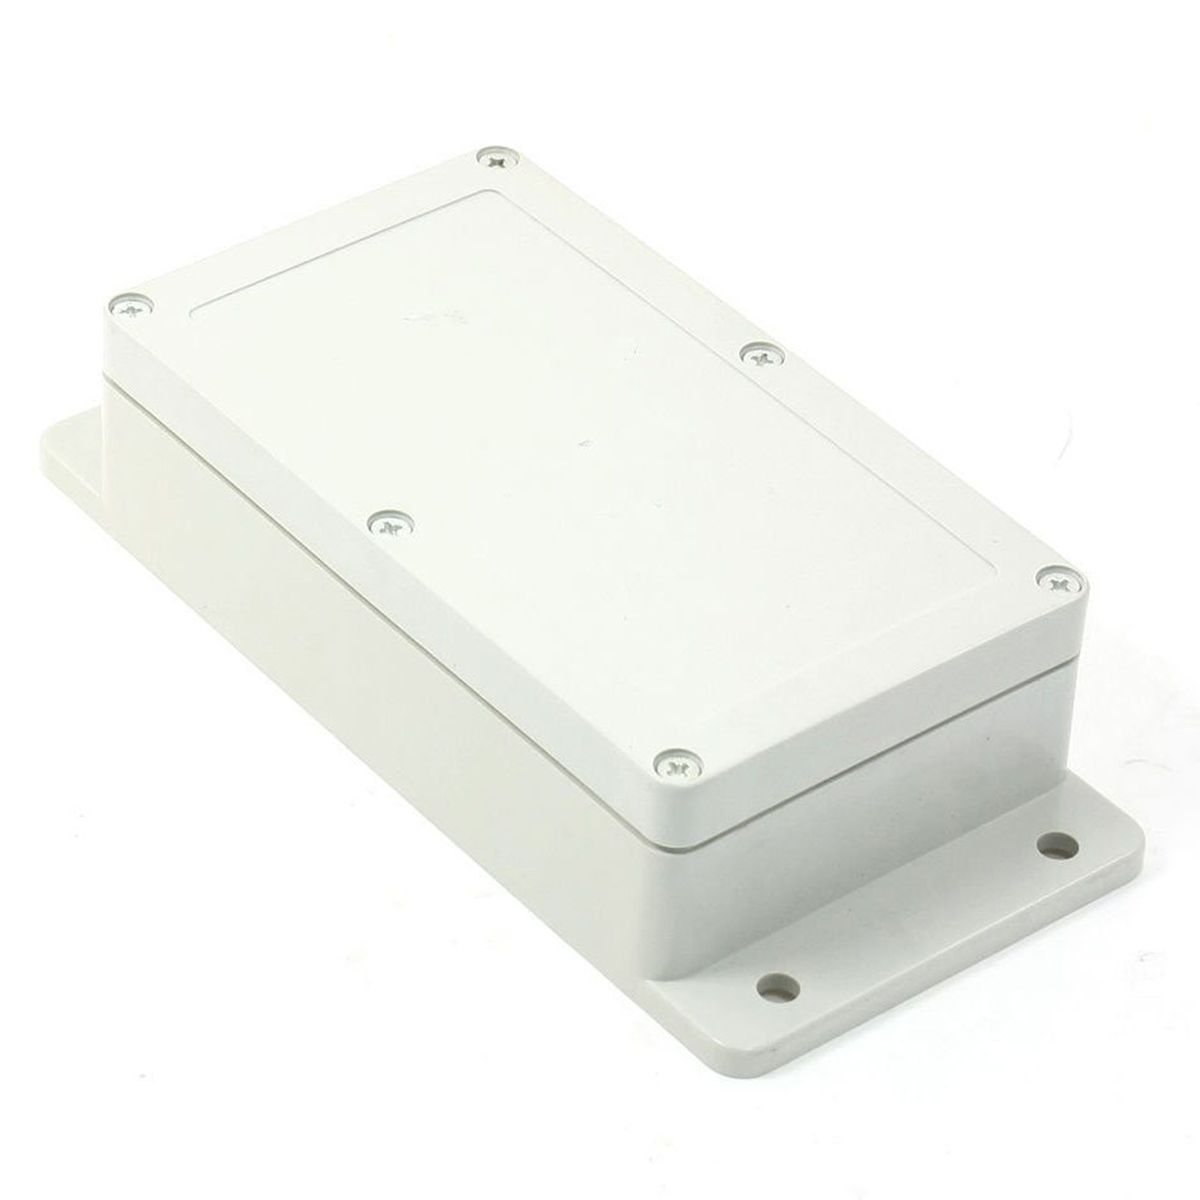 Waterproof Electronic Project Enclosure White Plastic Power Junction Box Case 158mmx90mmx46mm waterproof abs plastic electronic box white case 6 size